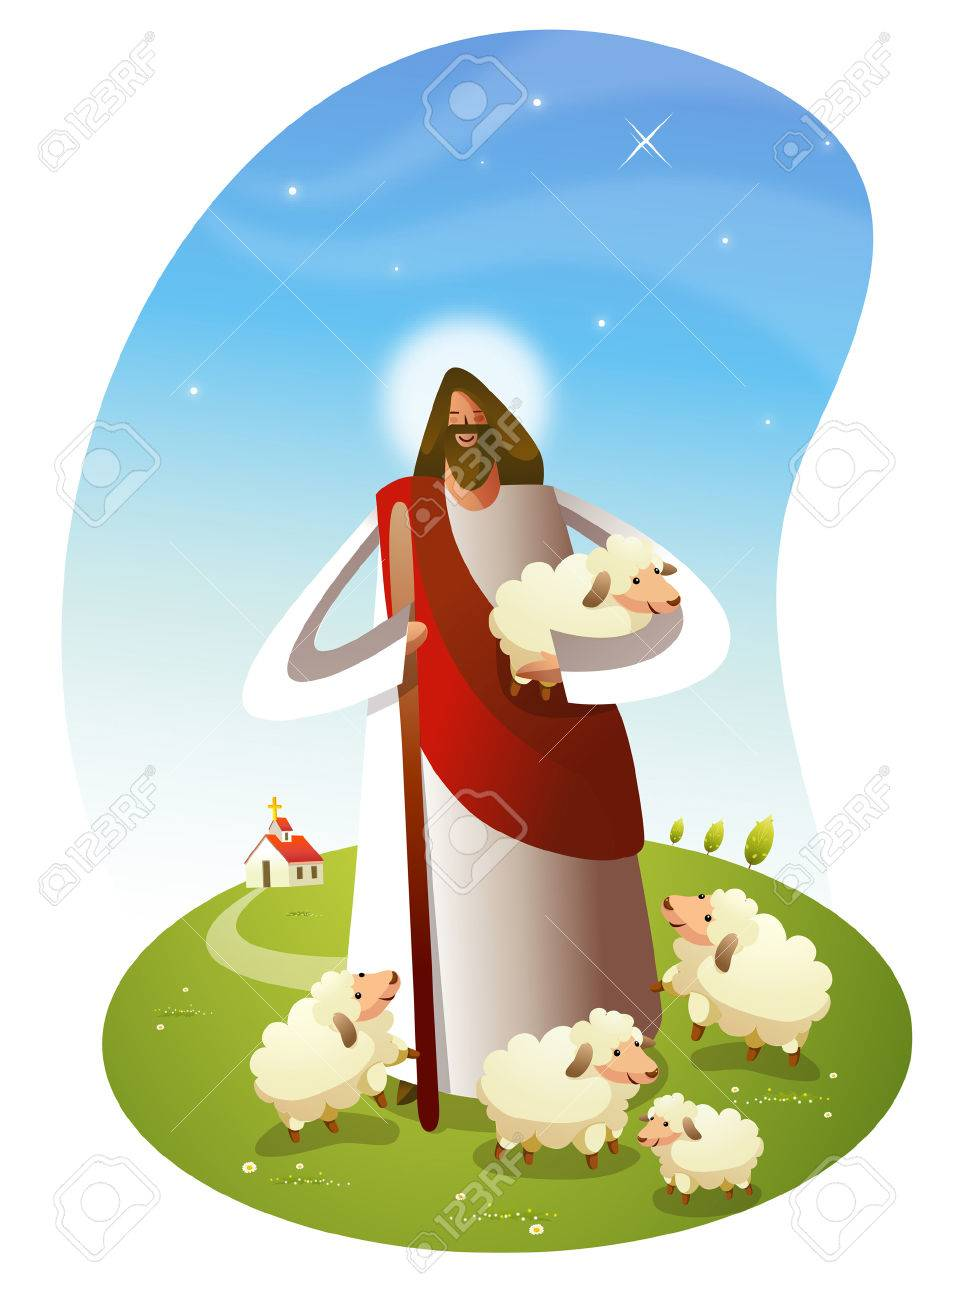 medium resolution of jesus christ standing with sheep stock vector 78587751